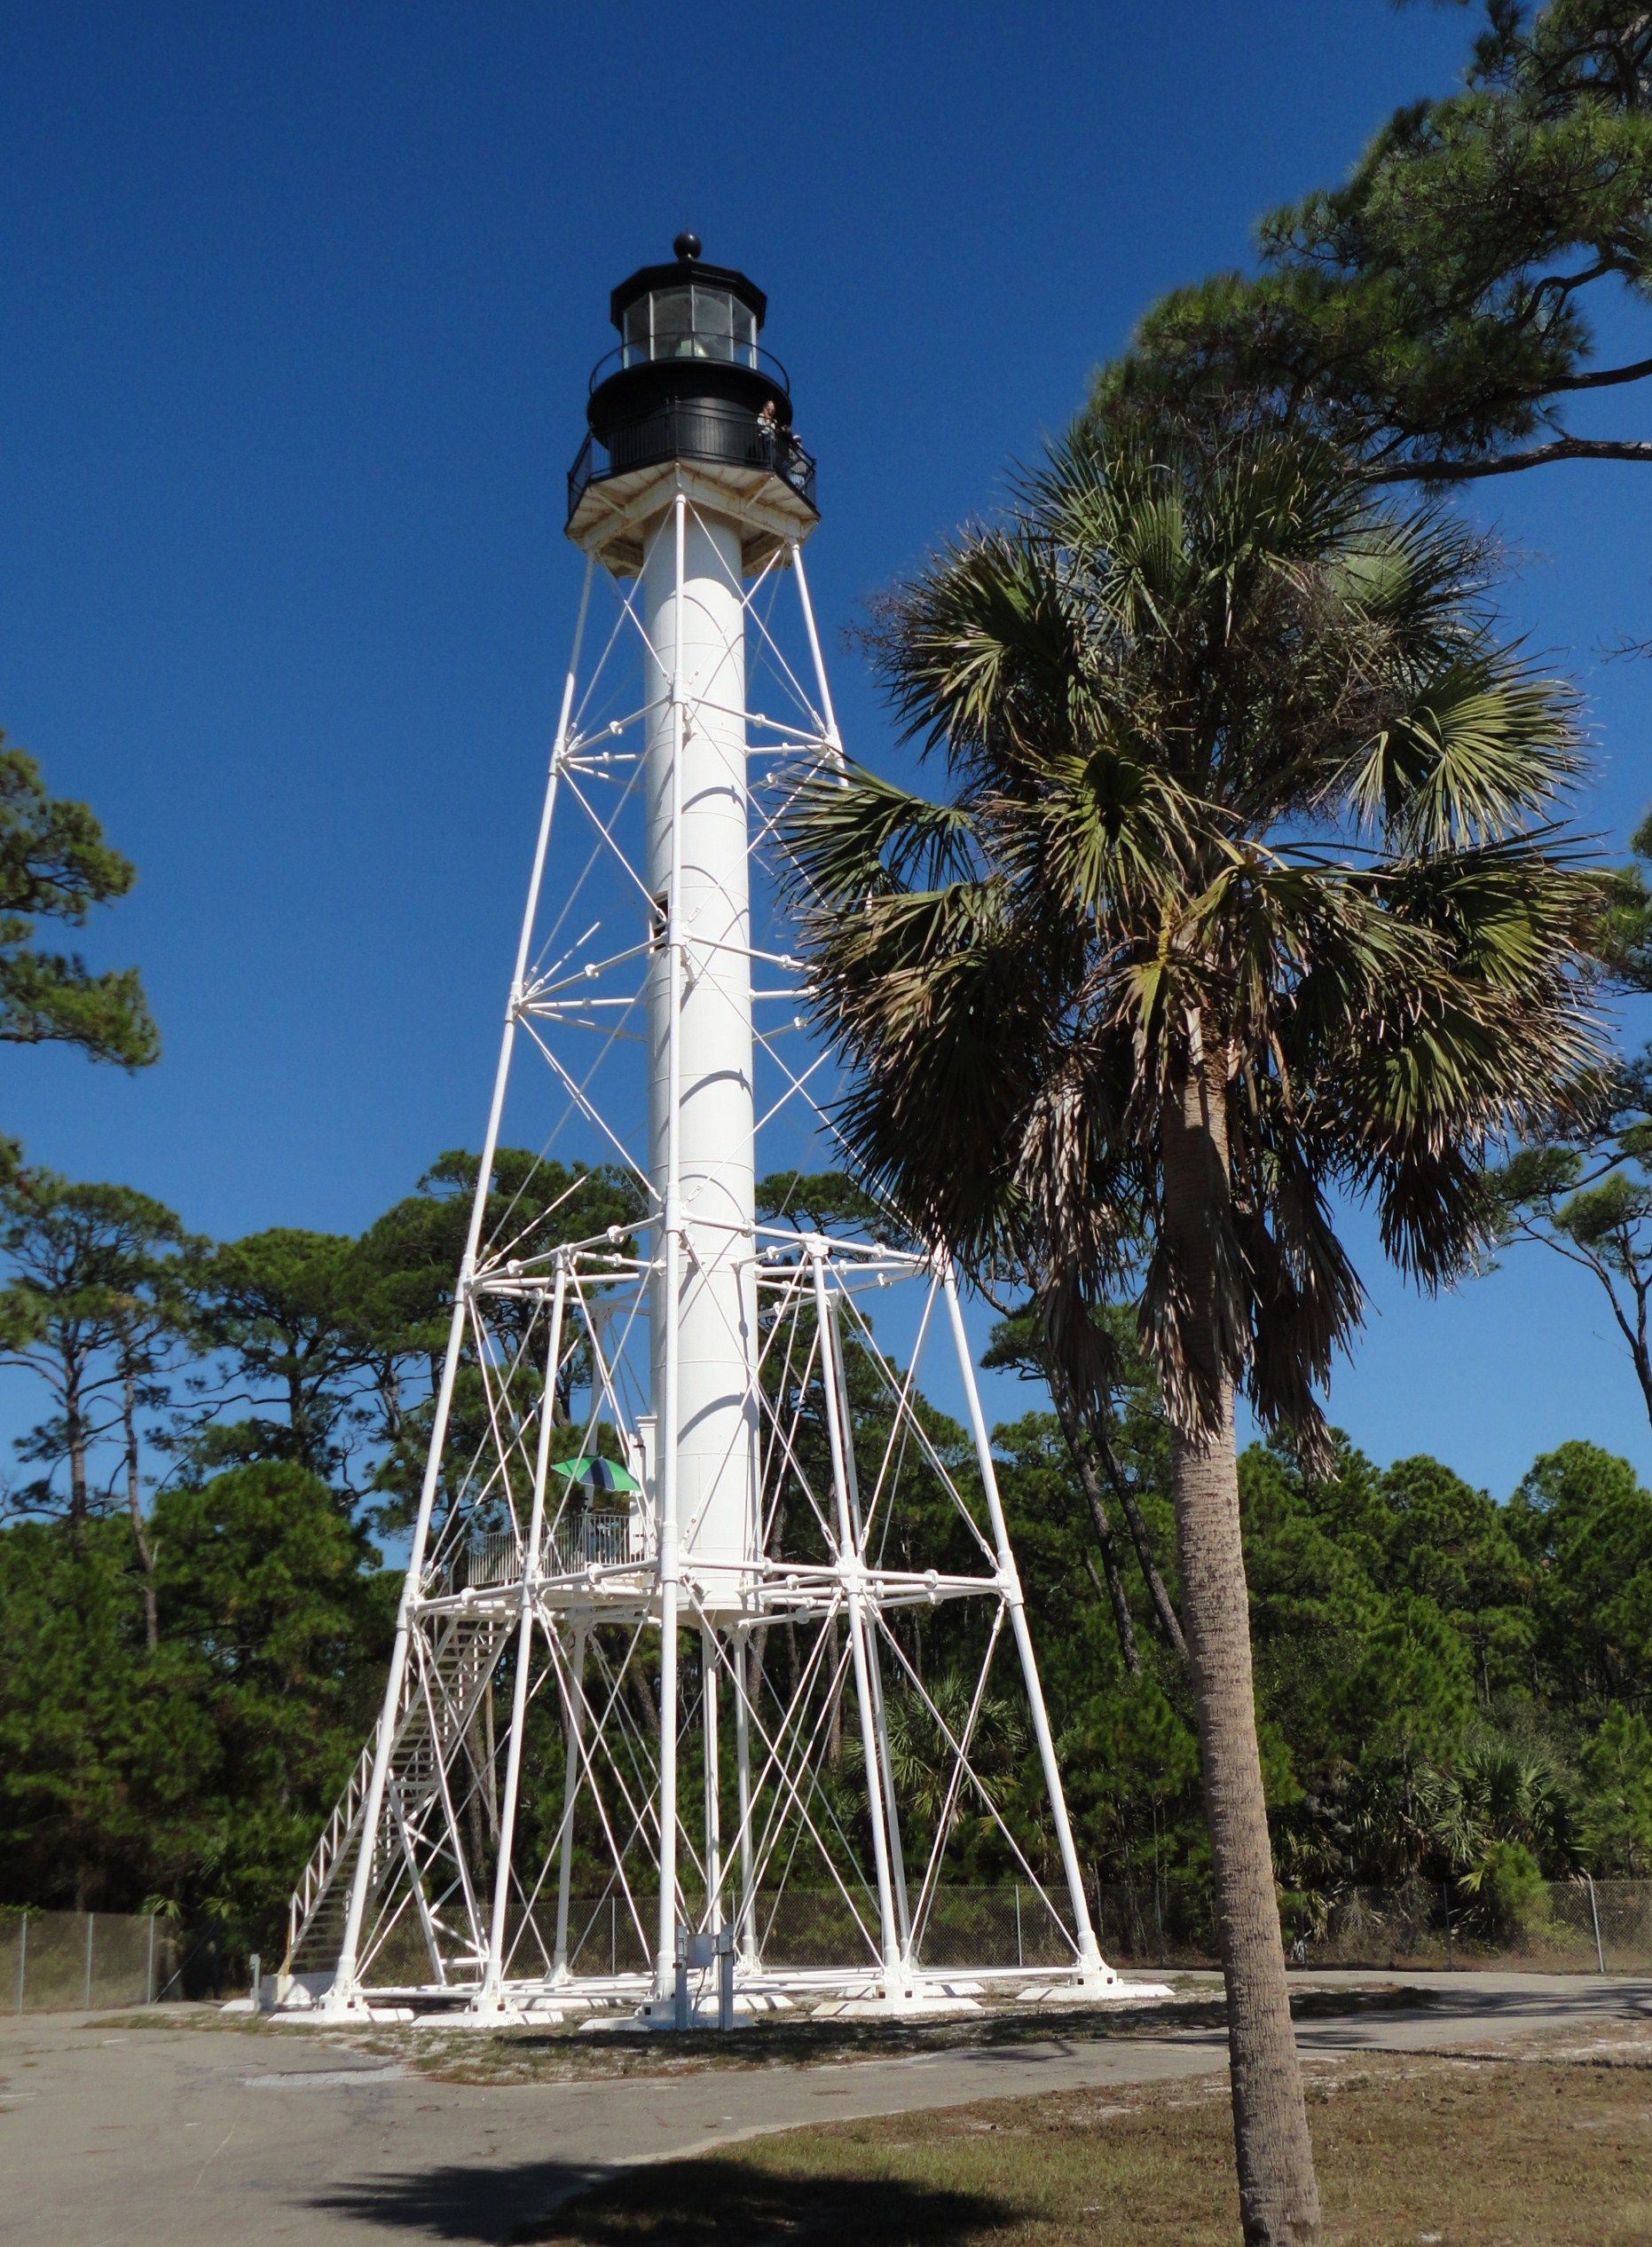 Cape san blas lighthouse now being threatened by erosion